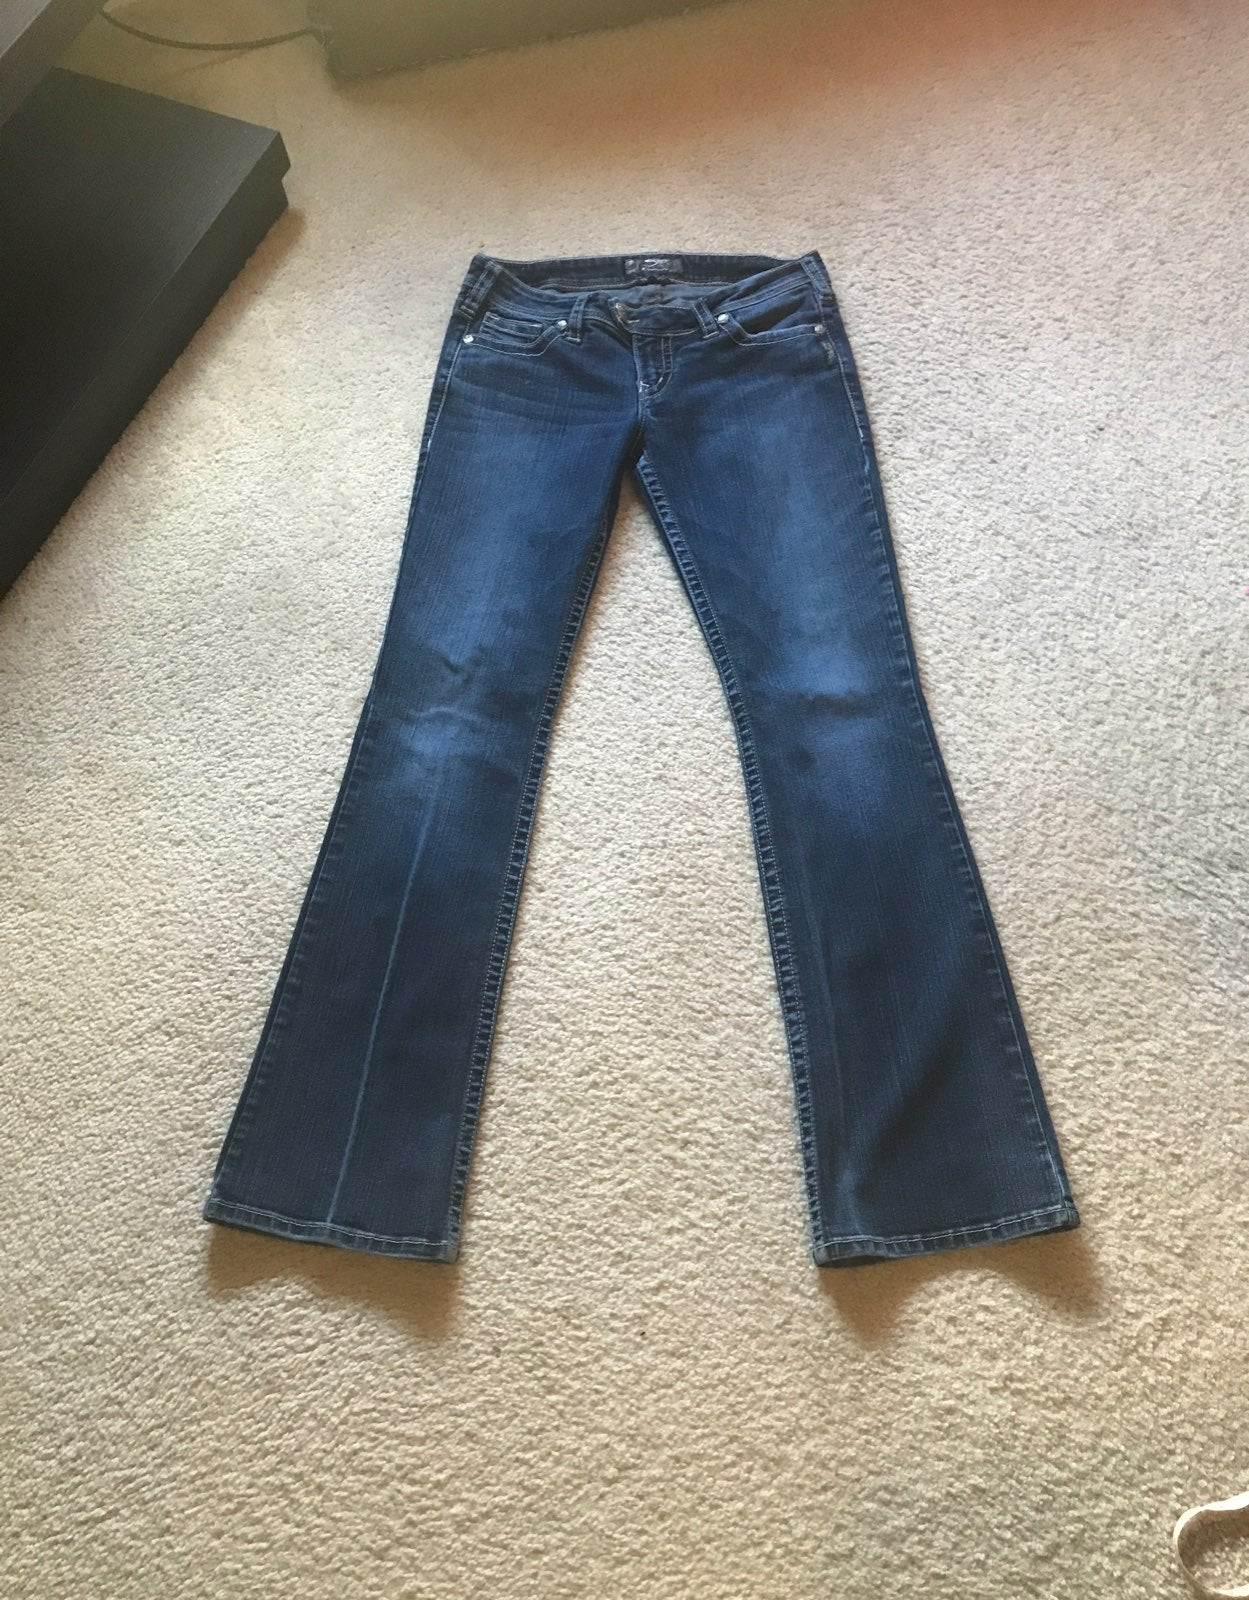 SILVER JEANS TUESDAY SIZE 30 X 33